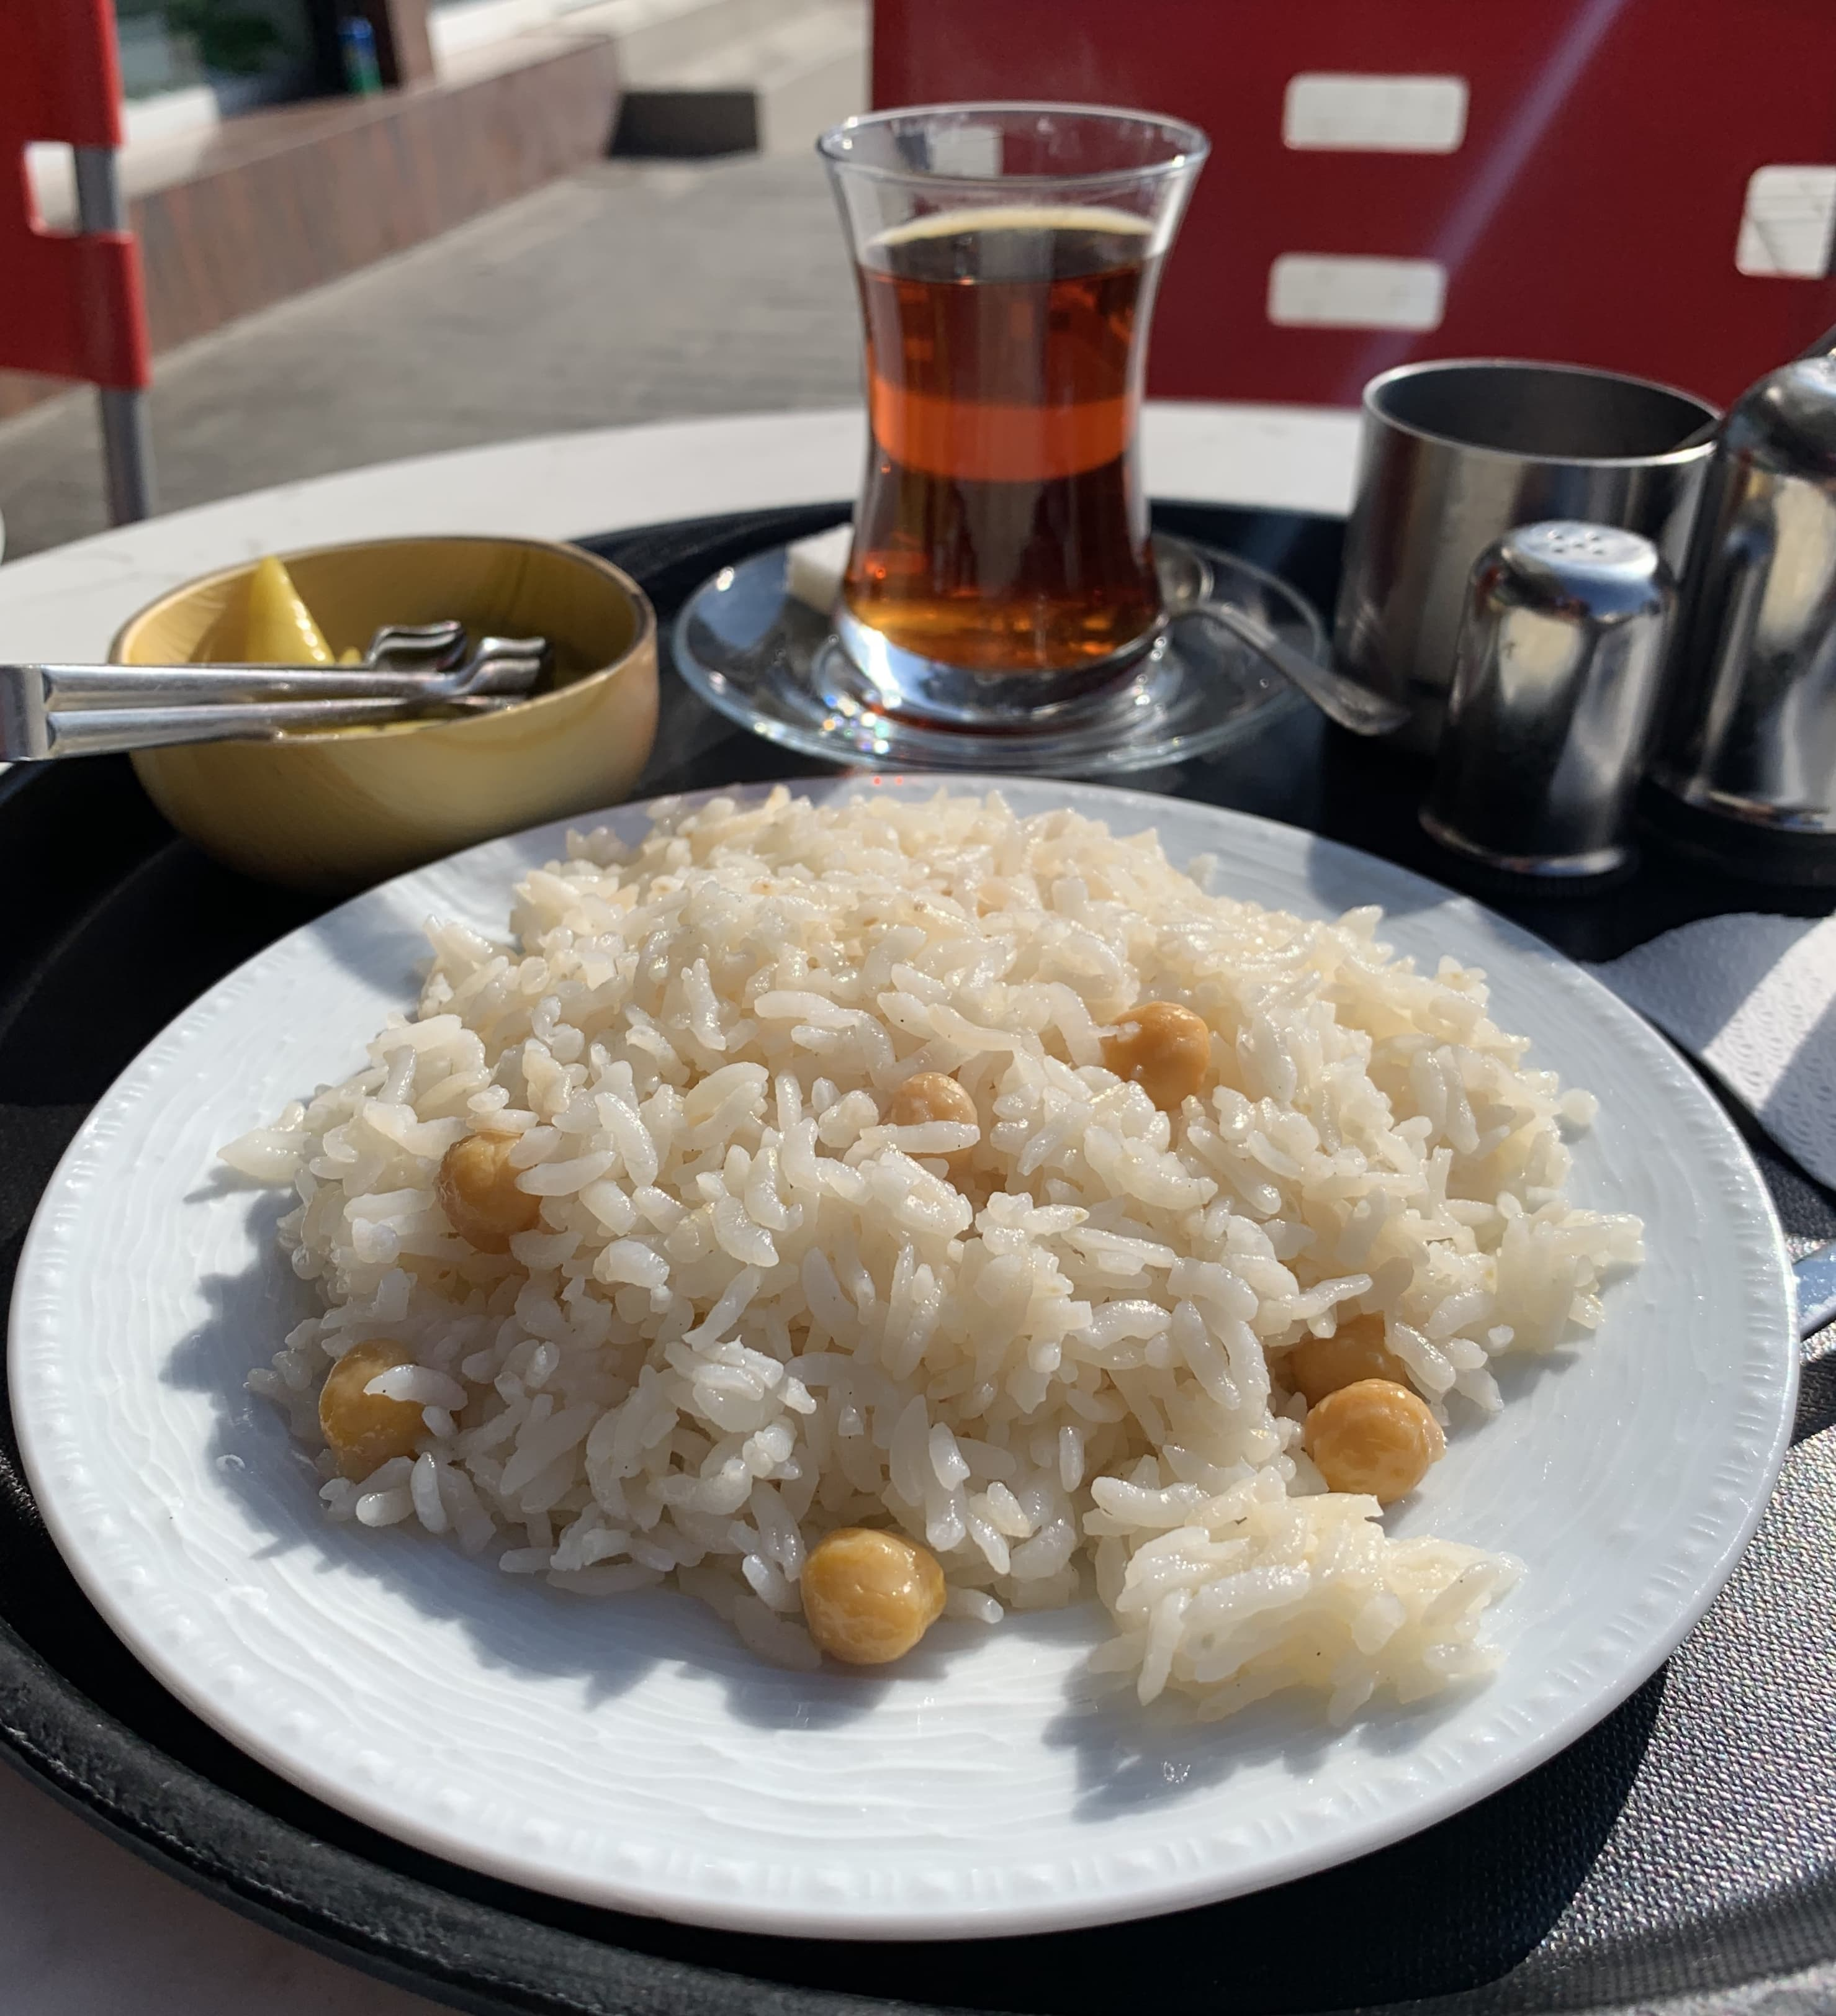 For a hearty and economical local meal, have the Turkish pilav at one of the many eateries in Karaköy.